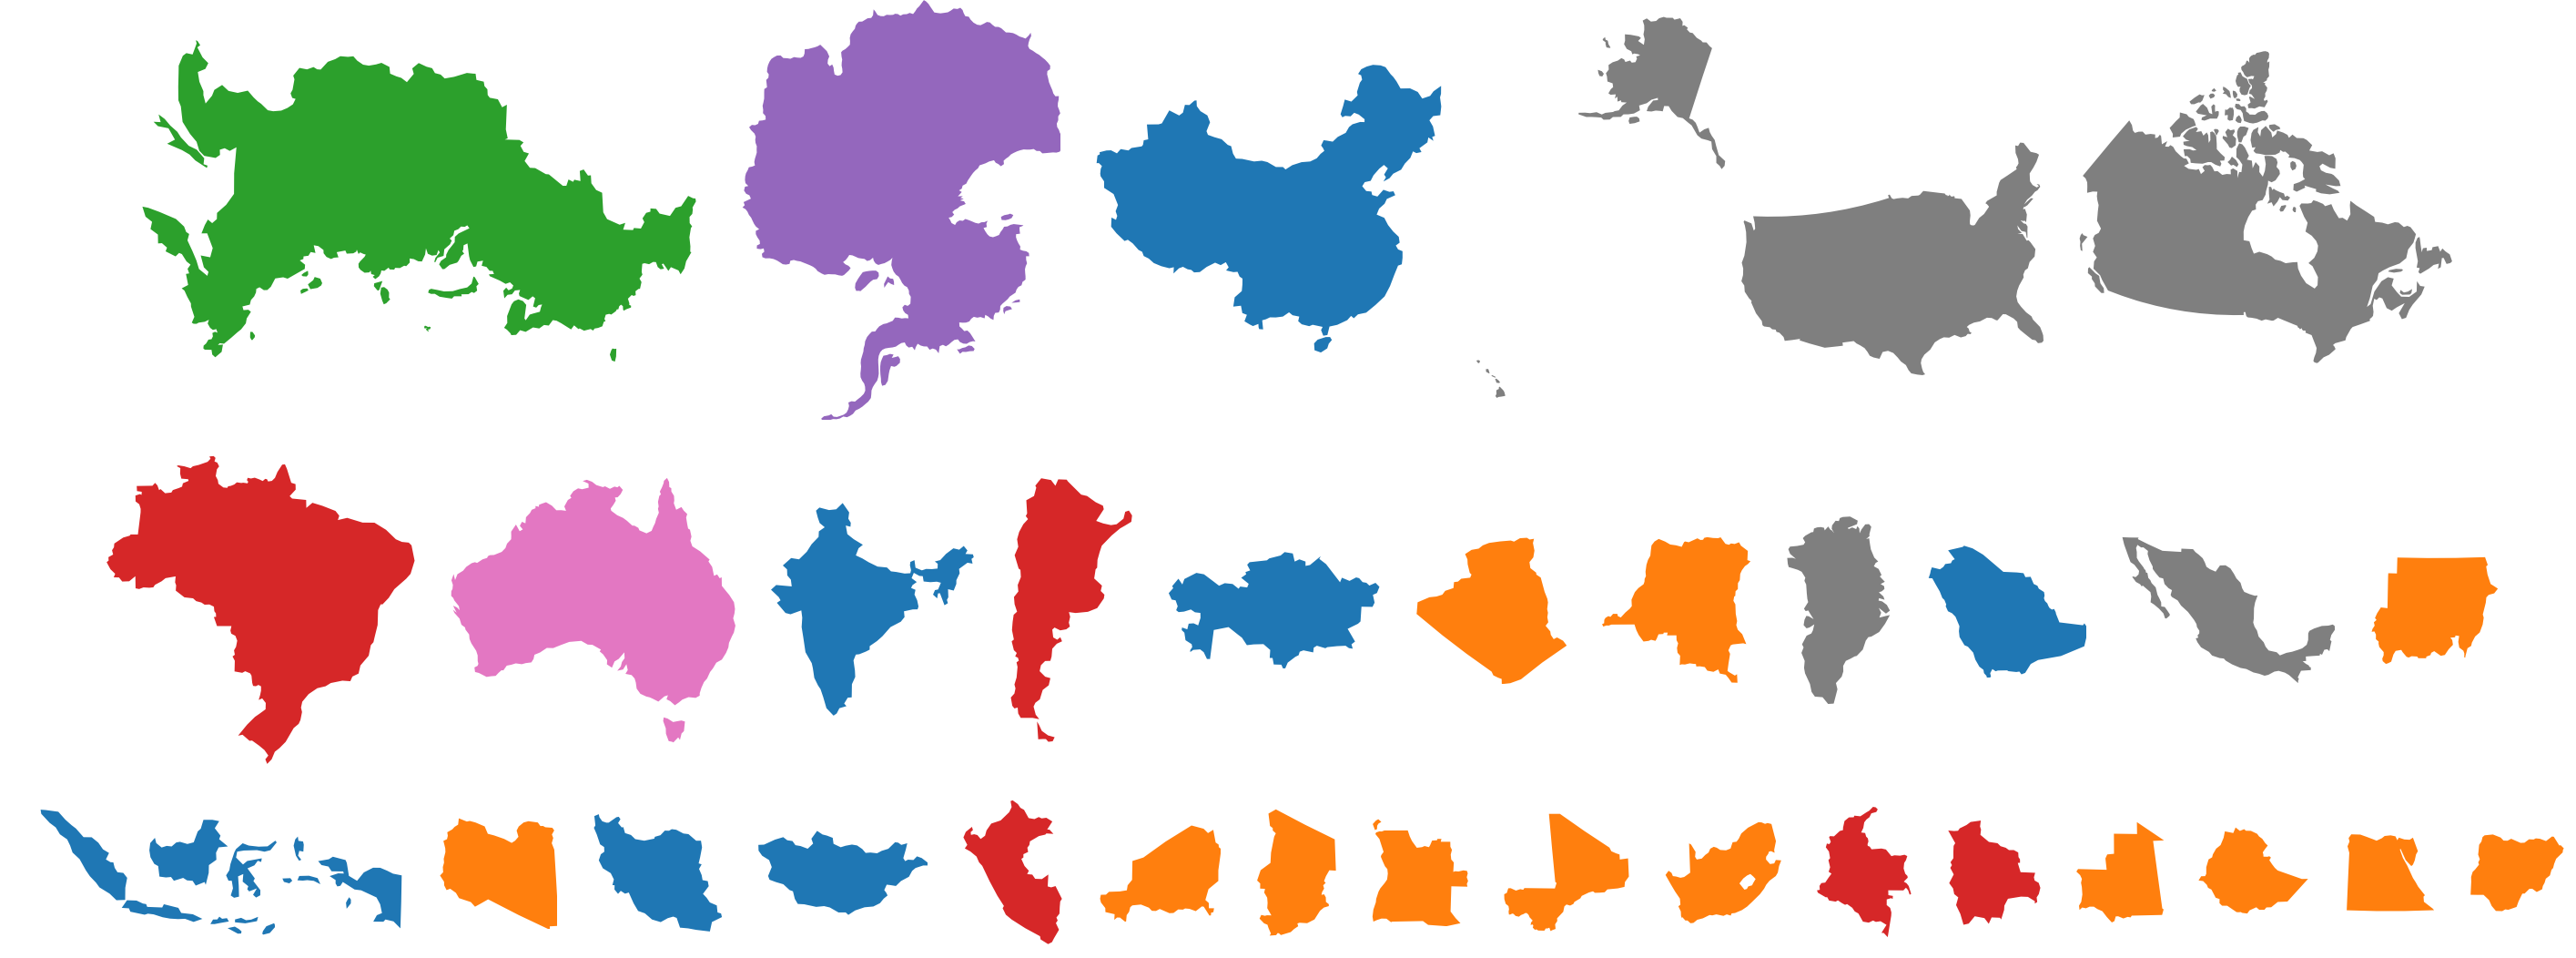 A simple but effective data visualization breaking down for World countries by size